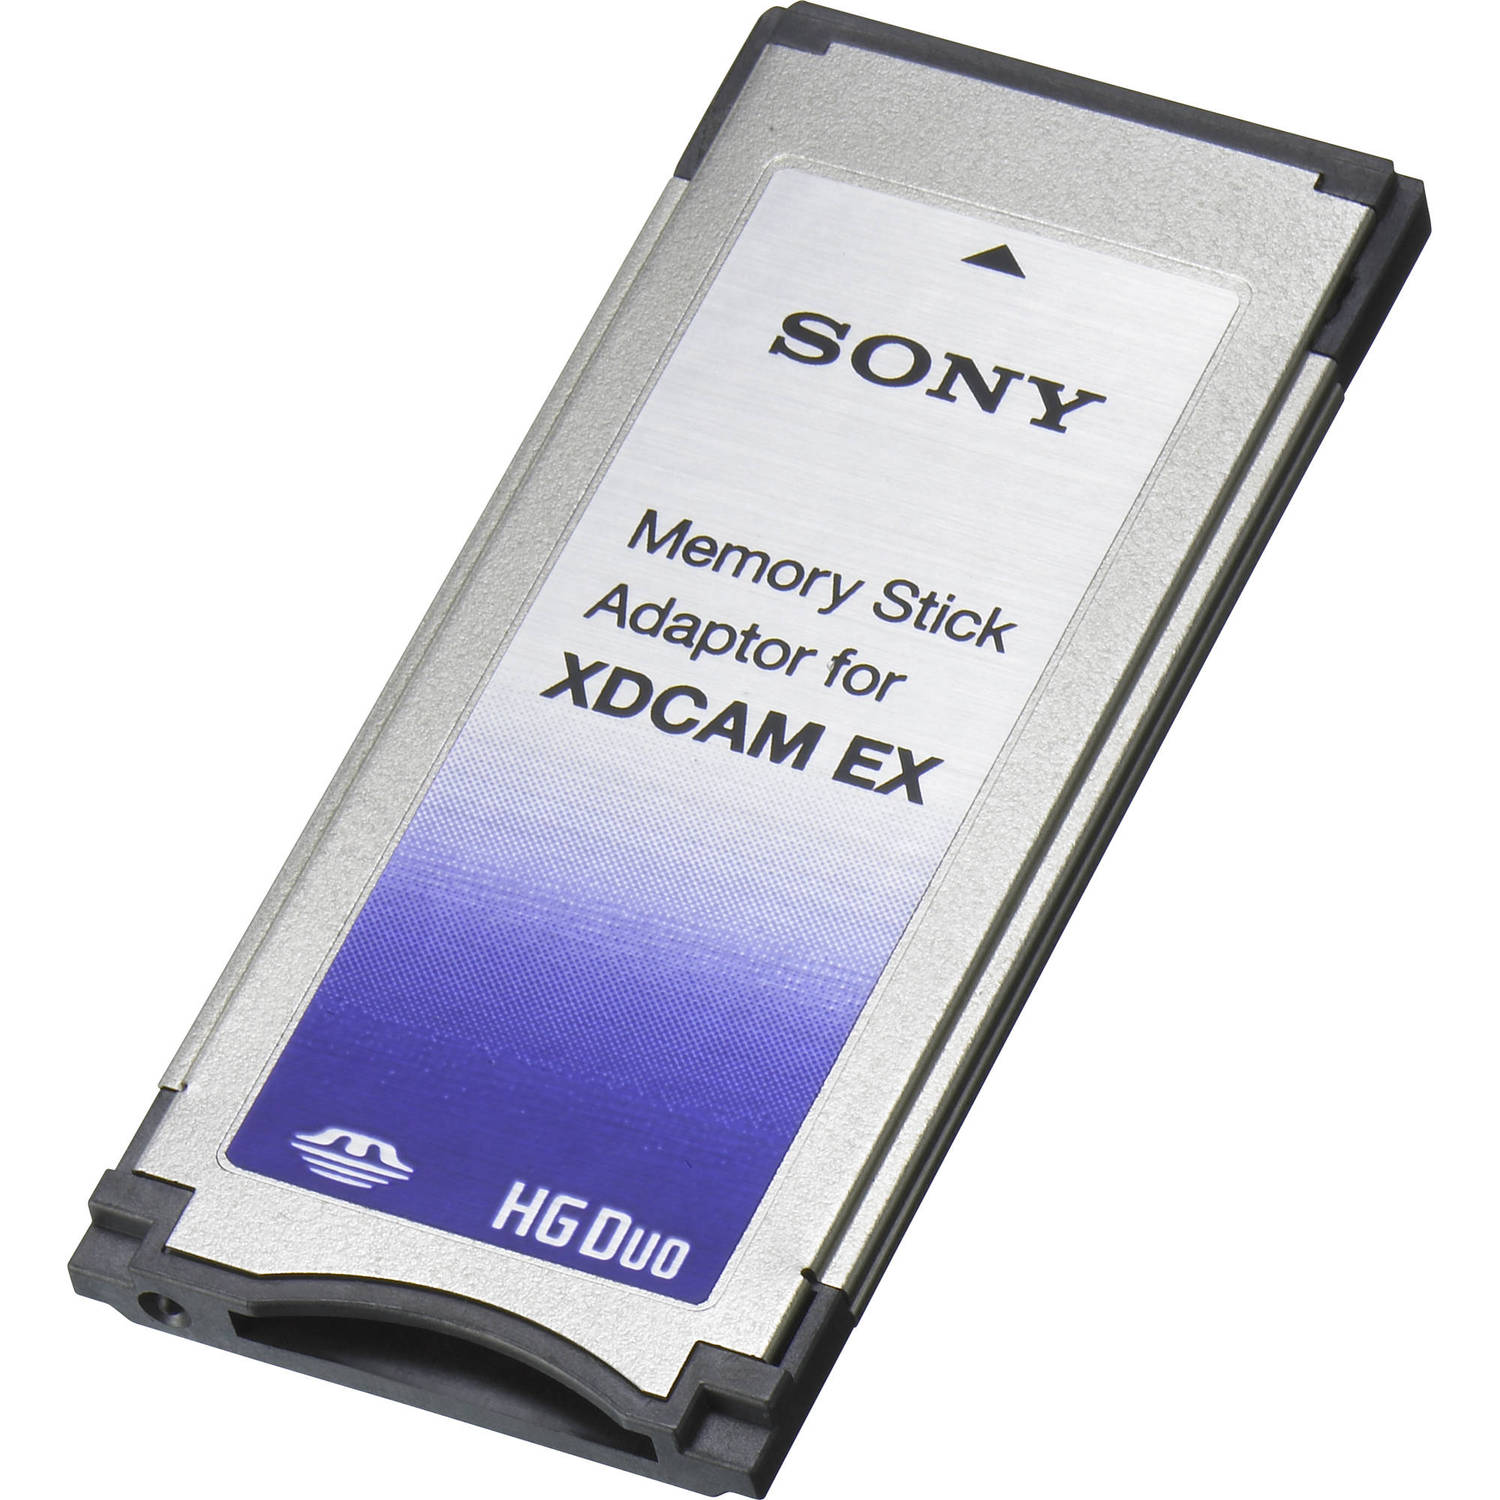 Sony MEAD-MS01 Memory Stick Adapter for XDCAM EX